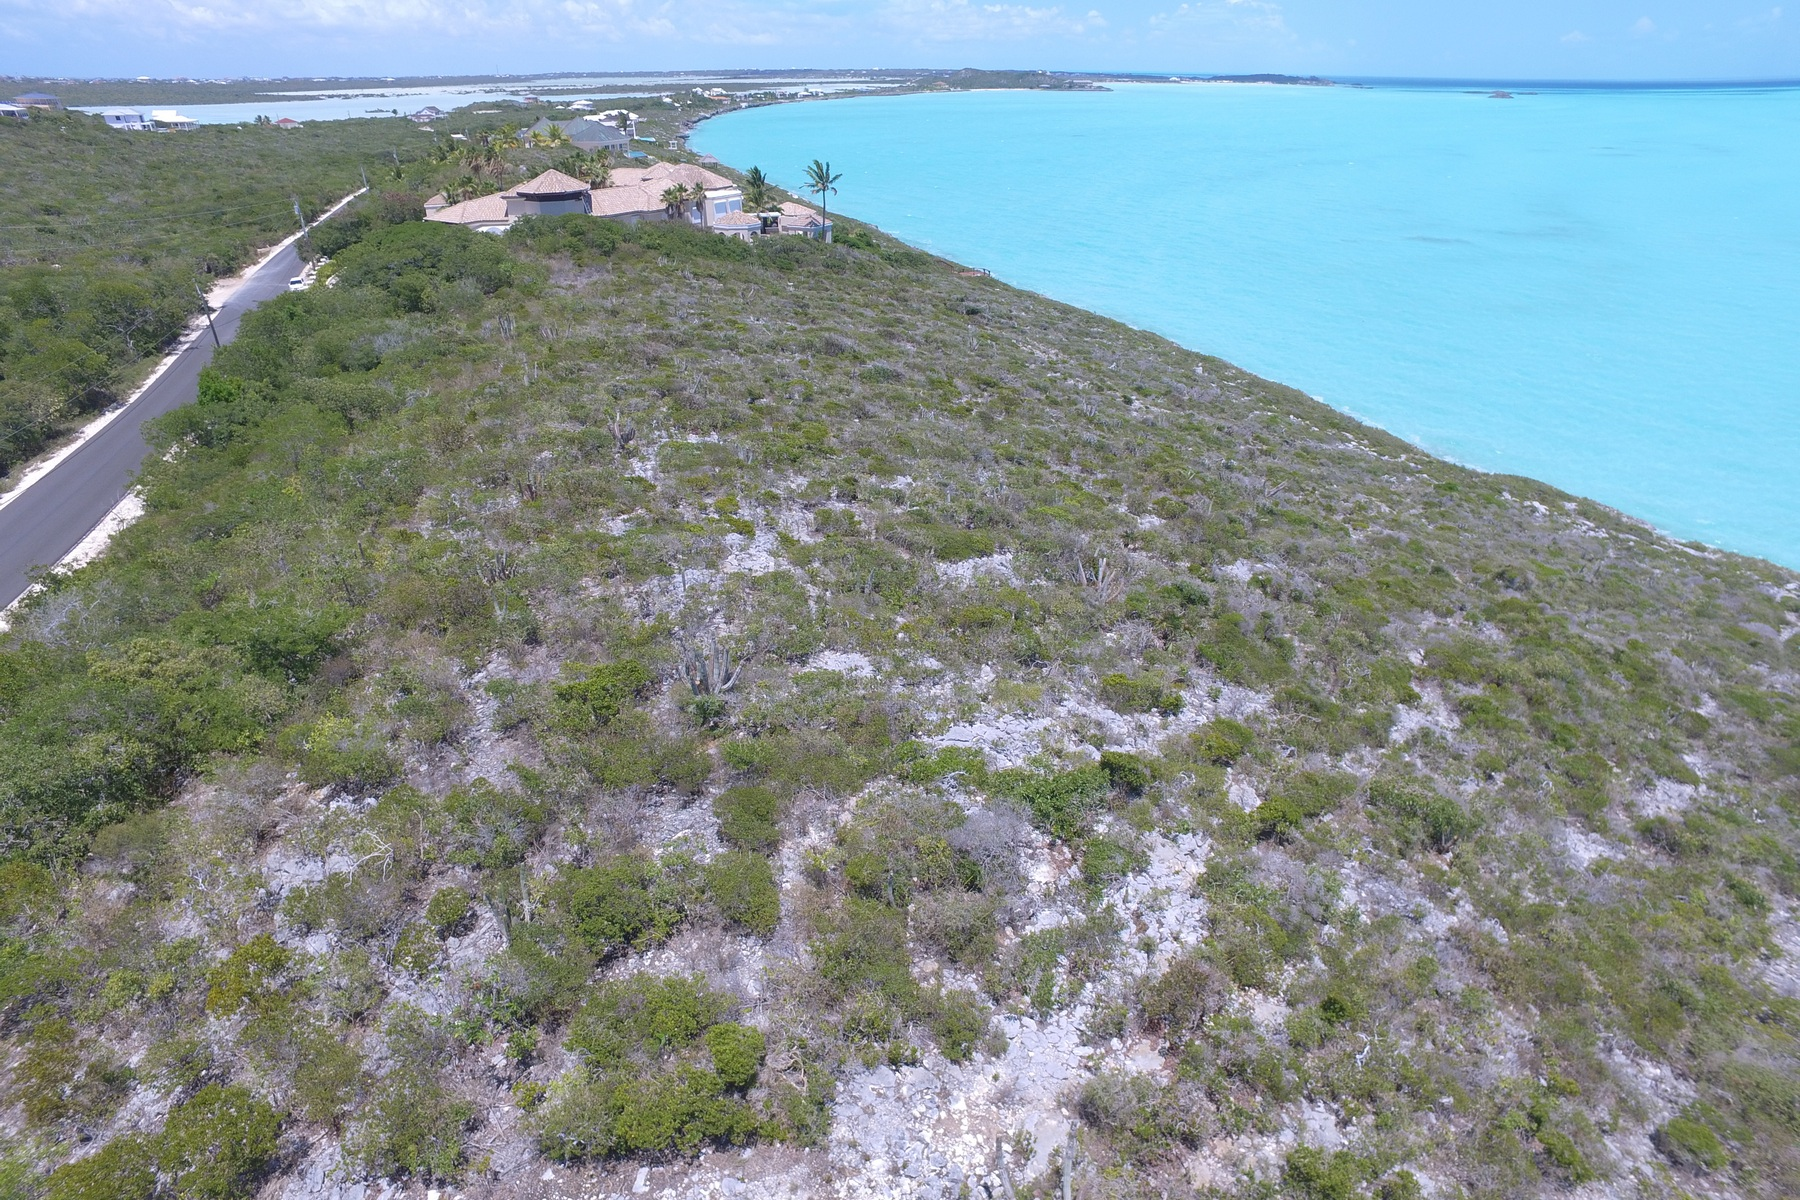 Land for Sale at STUNNING ELEVATED WATERFRONT LOT Turtle Tail, Providenciales Turks And Caicos Islands